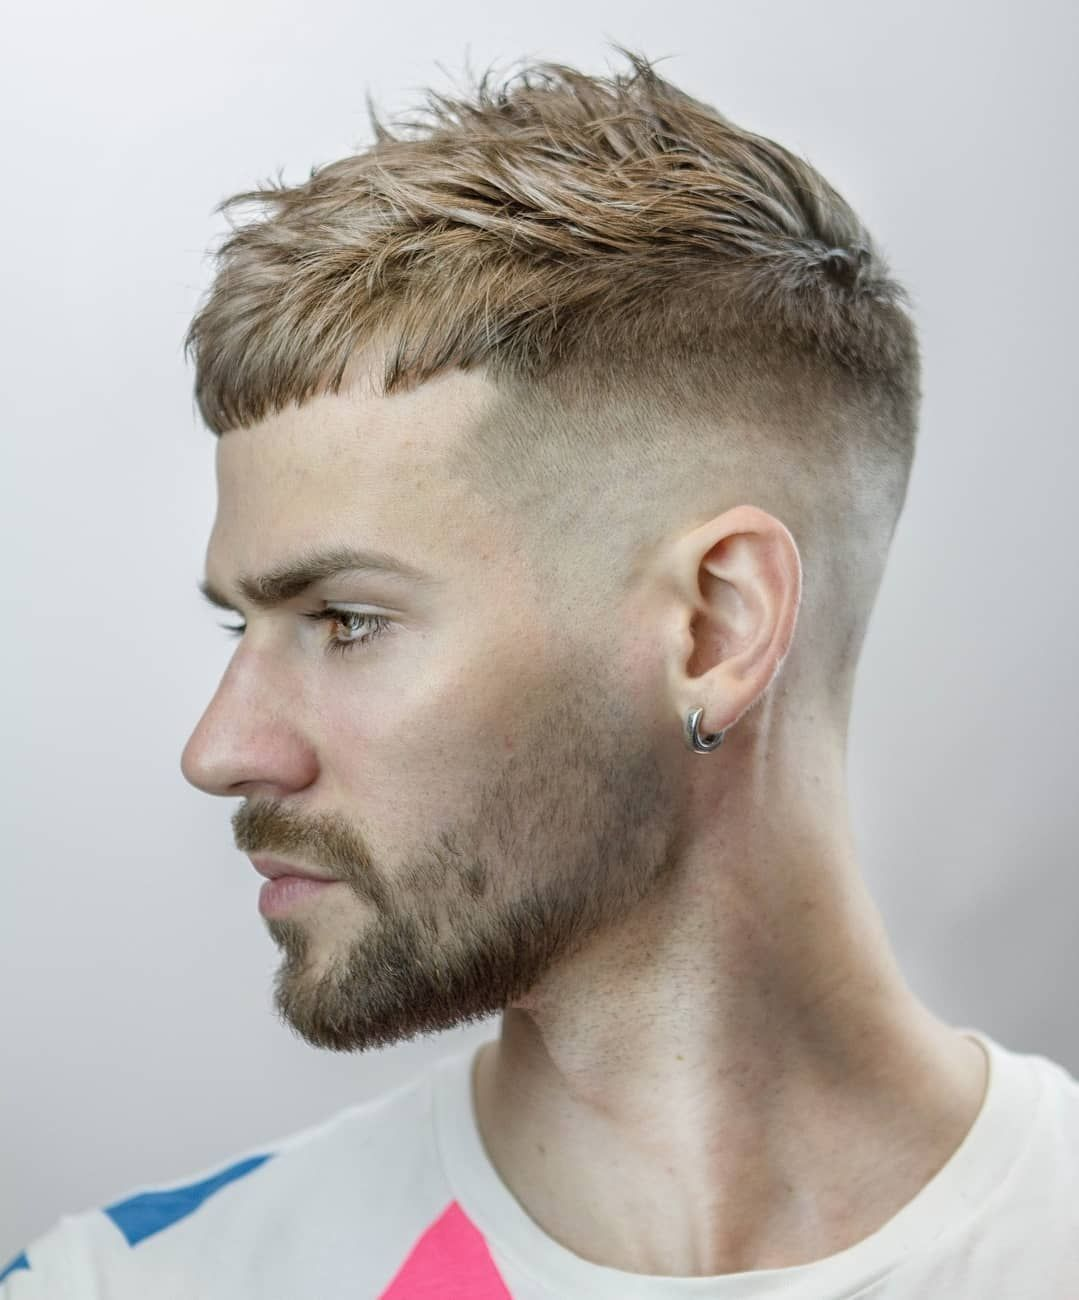 Image Result For French Crop Fade Haircuts For Balding Men Balding Mens Hairstyles Mens Hairstyles Short